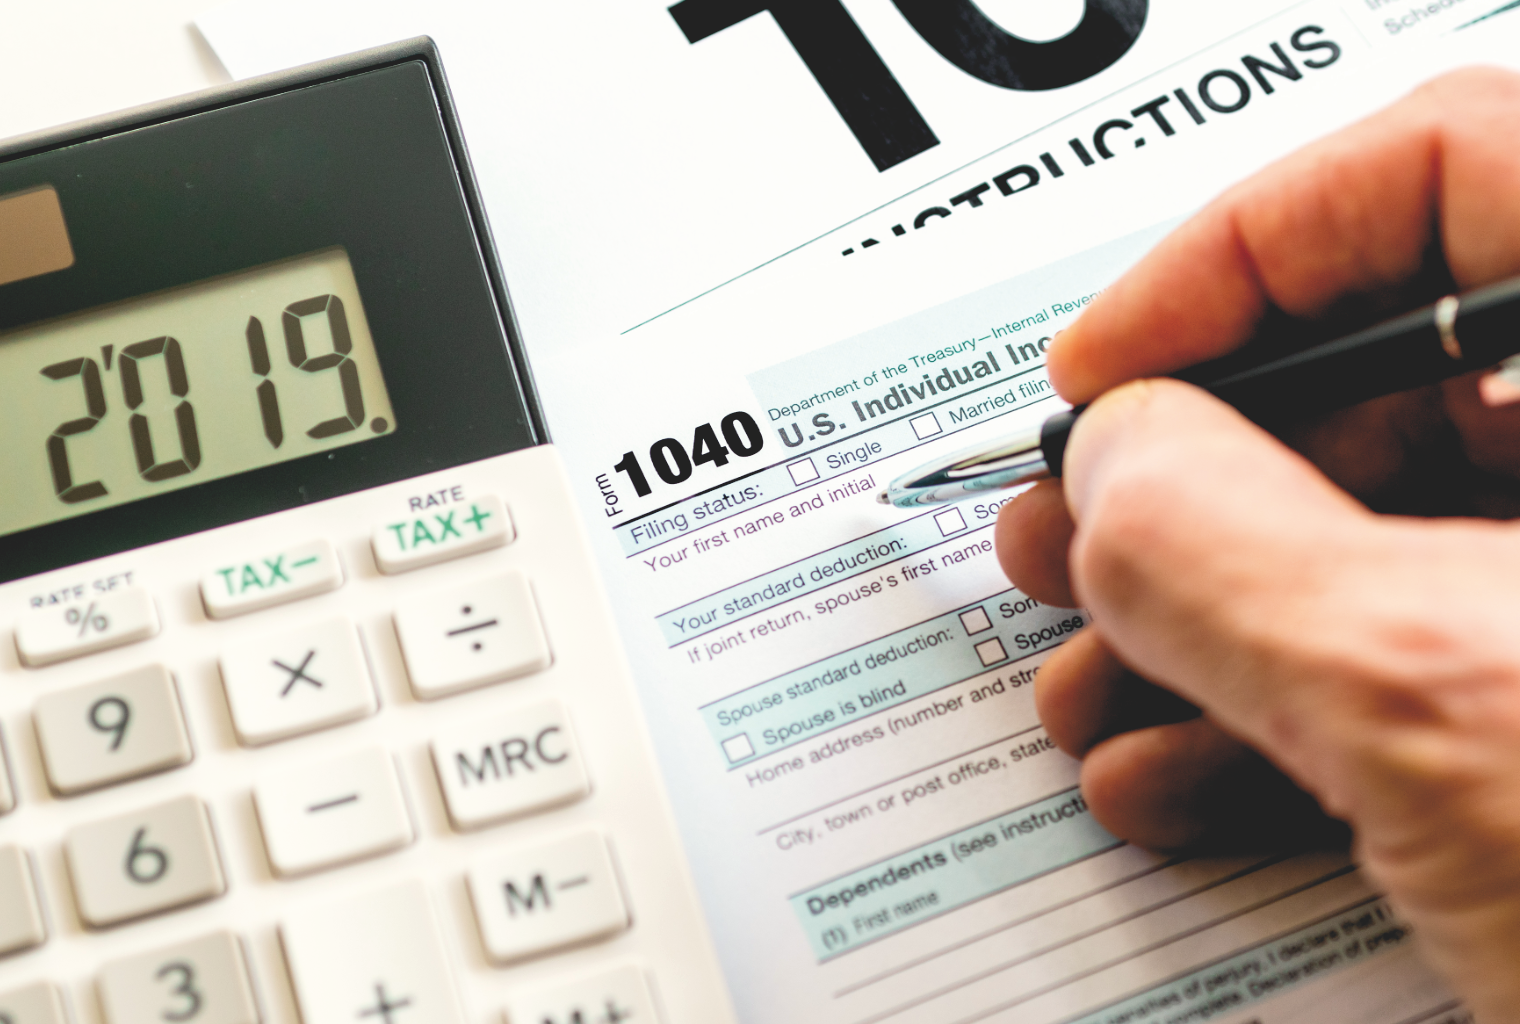 IRS to Require 150 Million Tax Filers to Disclose Crypto Dealings - Bitcoin News